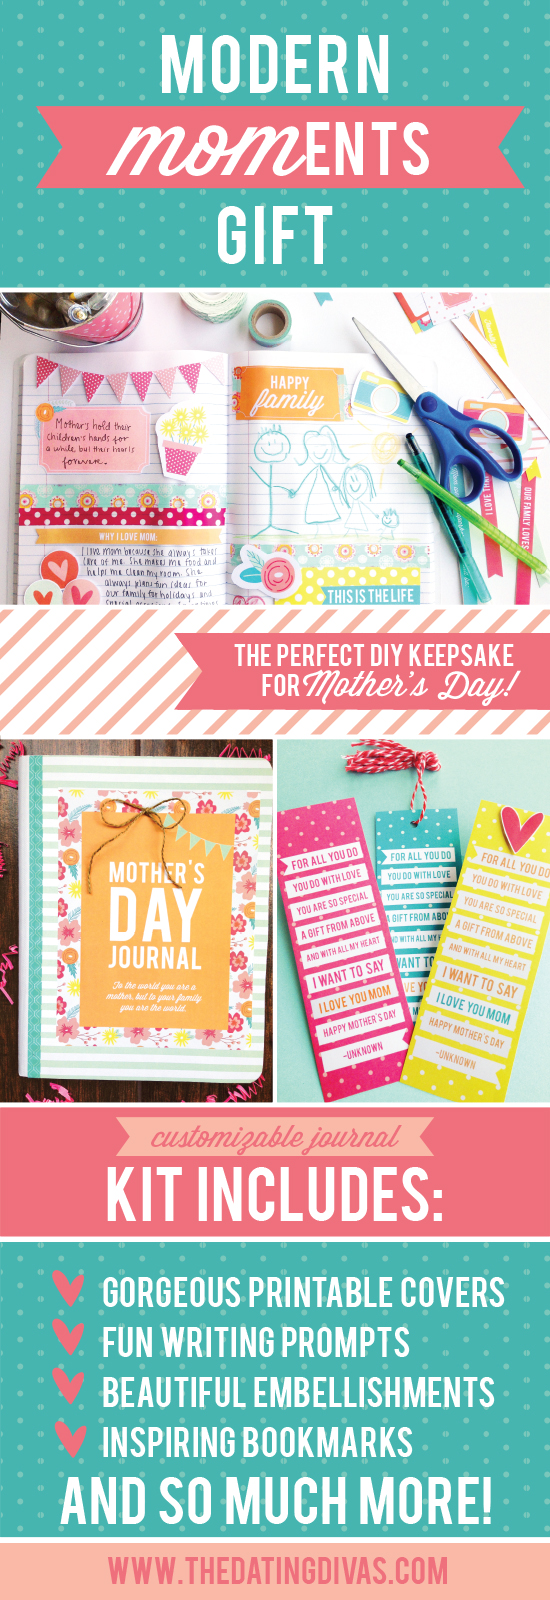 Make a personalized mom journal for Mothers Day - Super Cute!